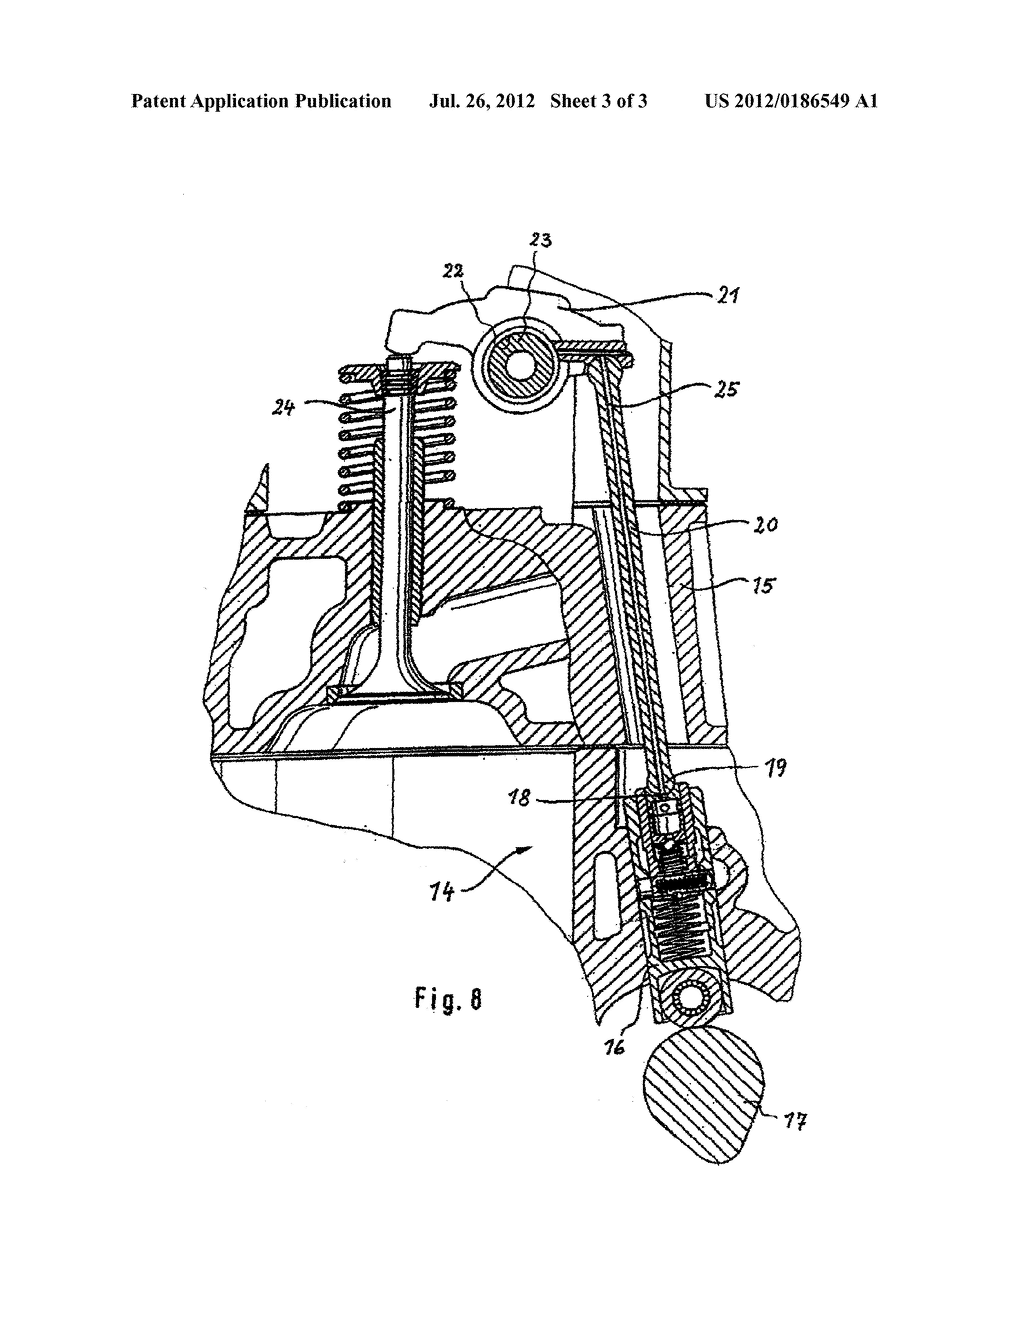 hight resolution of oscillating lever in a valve train of an internal combustion engine diagram schematic and image 04